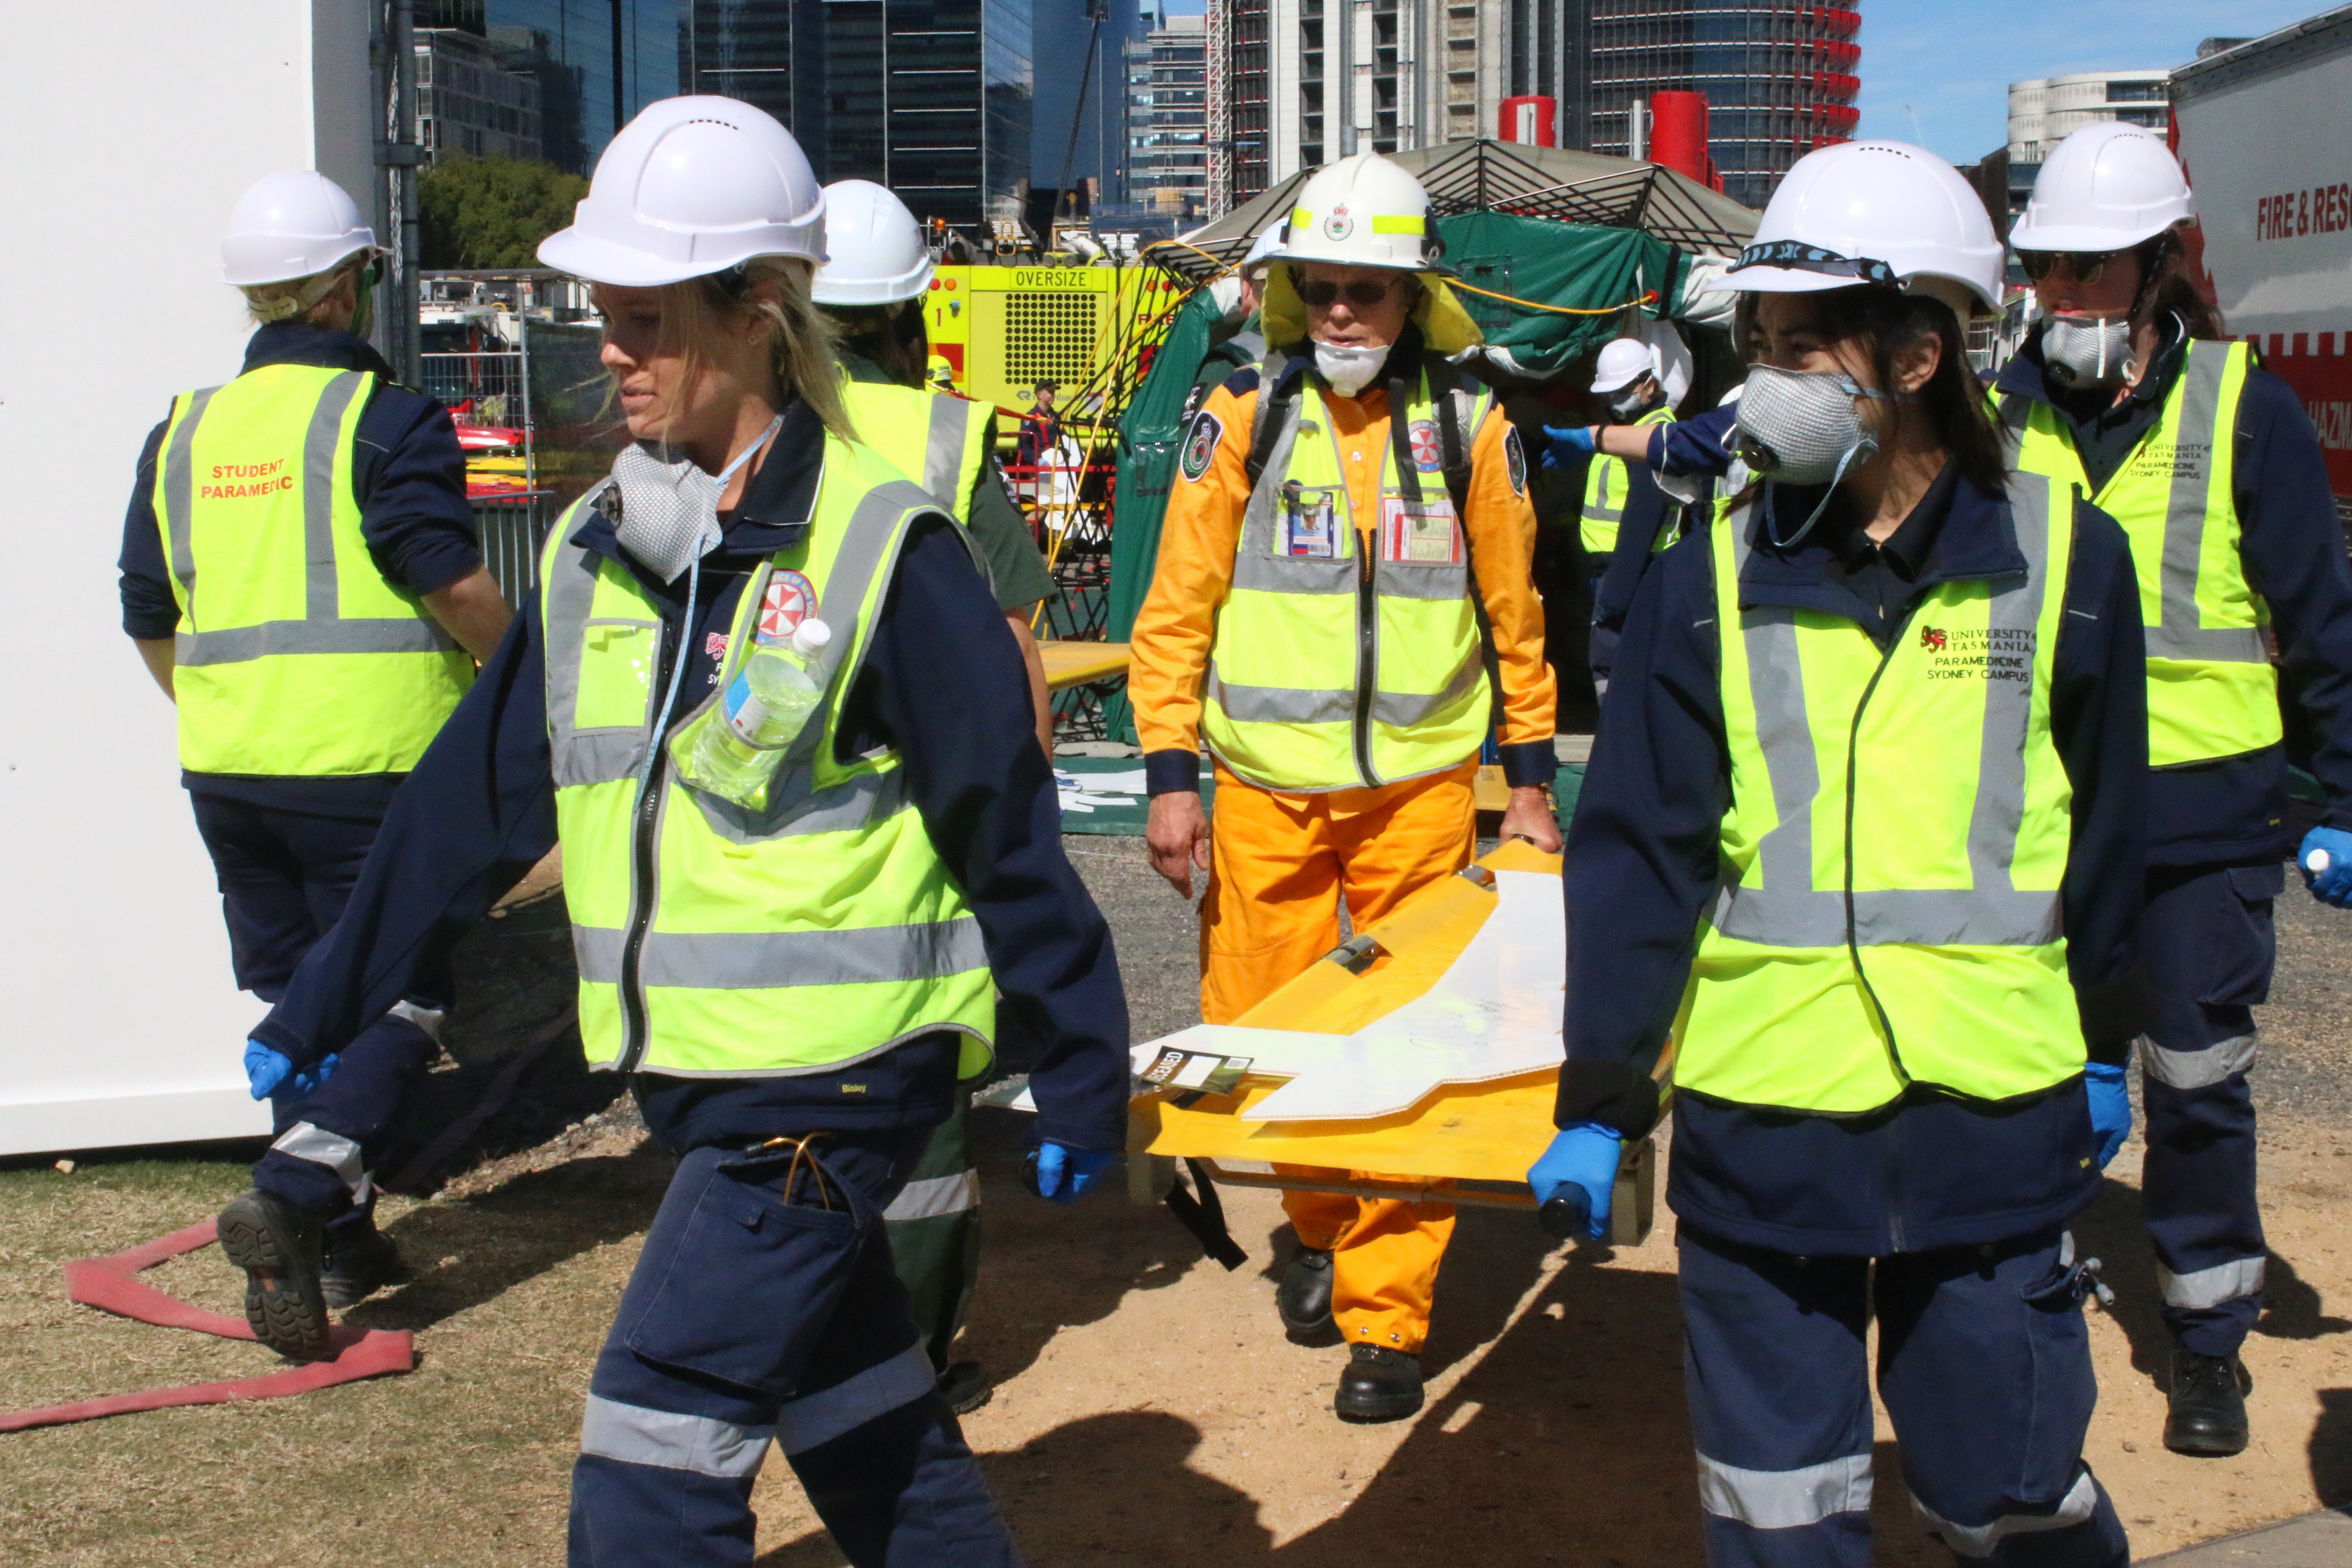 University paramedicine students shine in the face of disaster